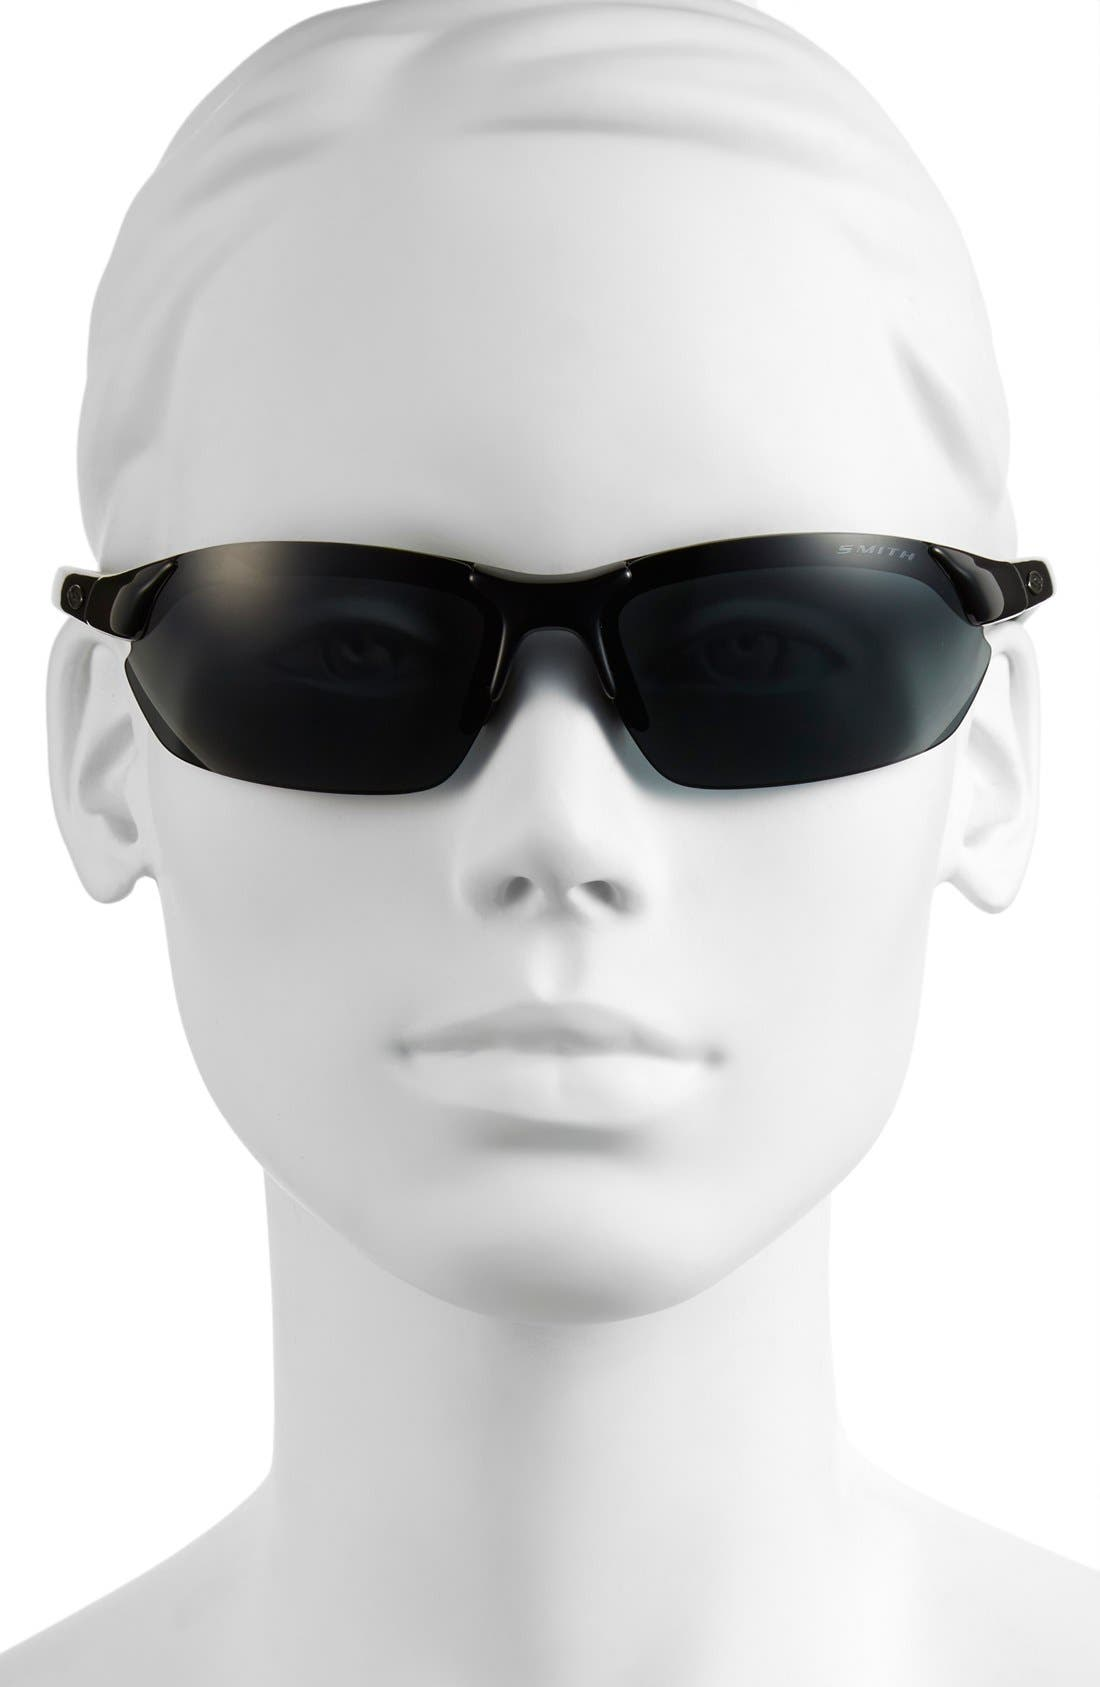 'Parallel Max' 65mm Polarized Sunglasses,                             Alternate thumbnail 5, color,                             Black/ Polar Grey/ Clear